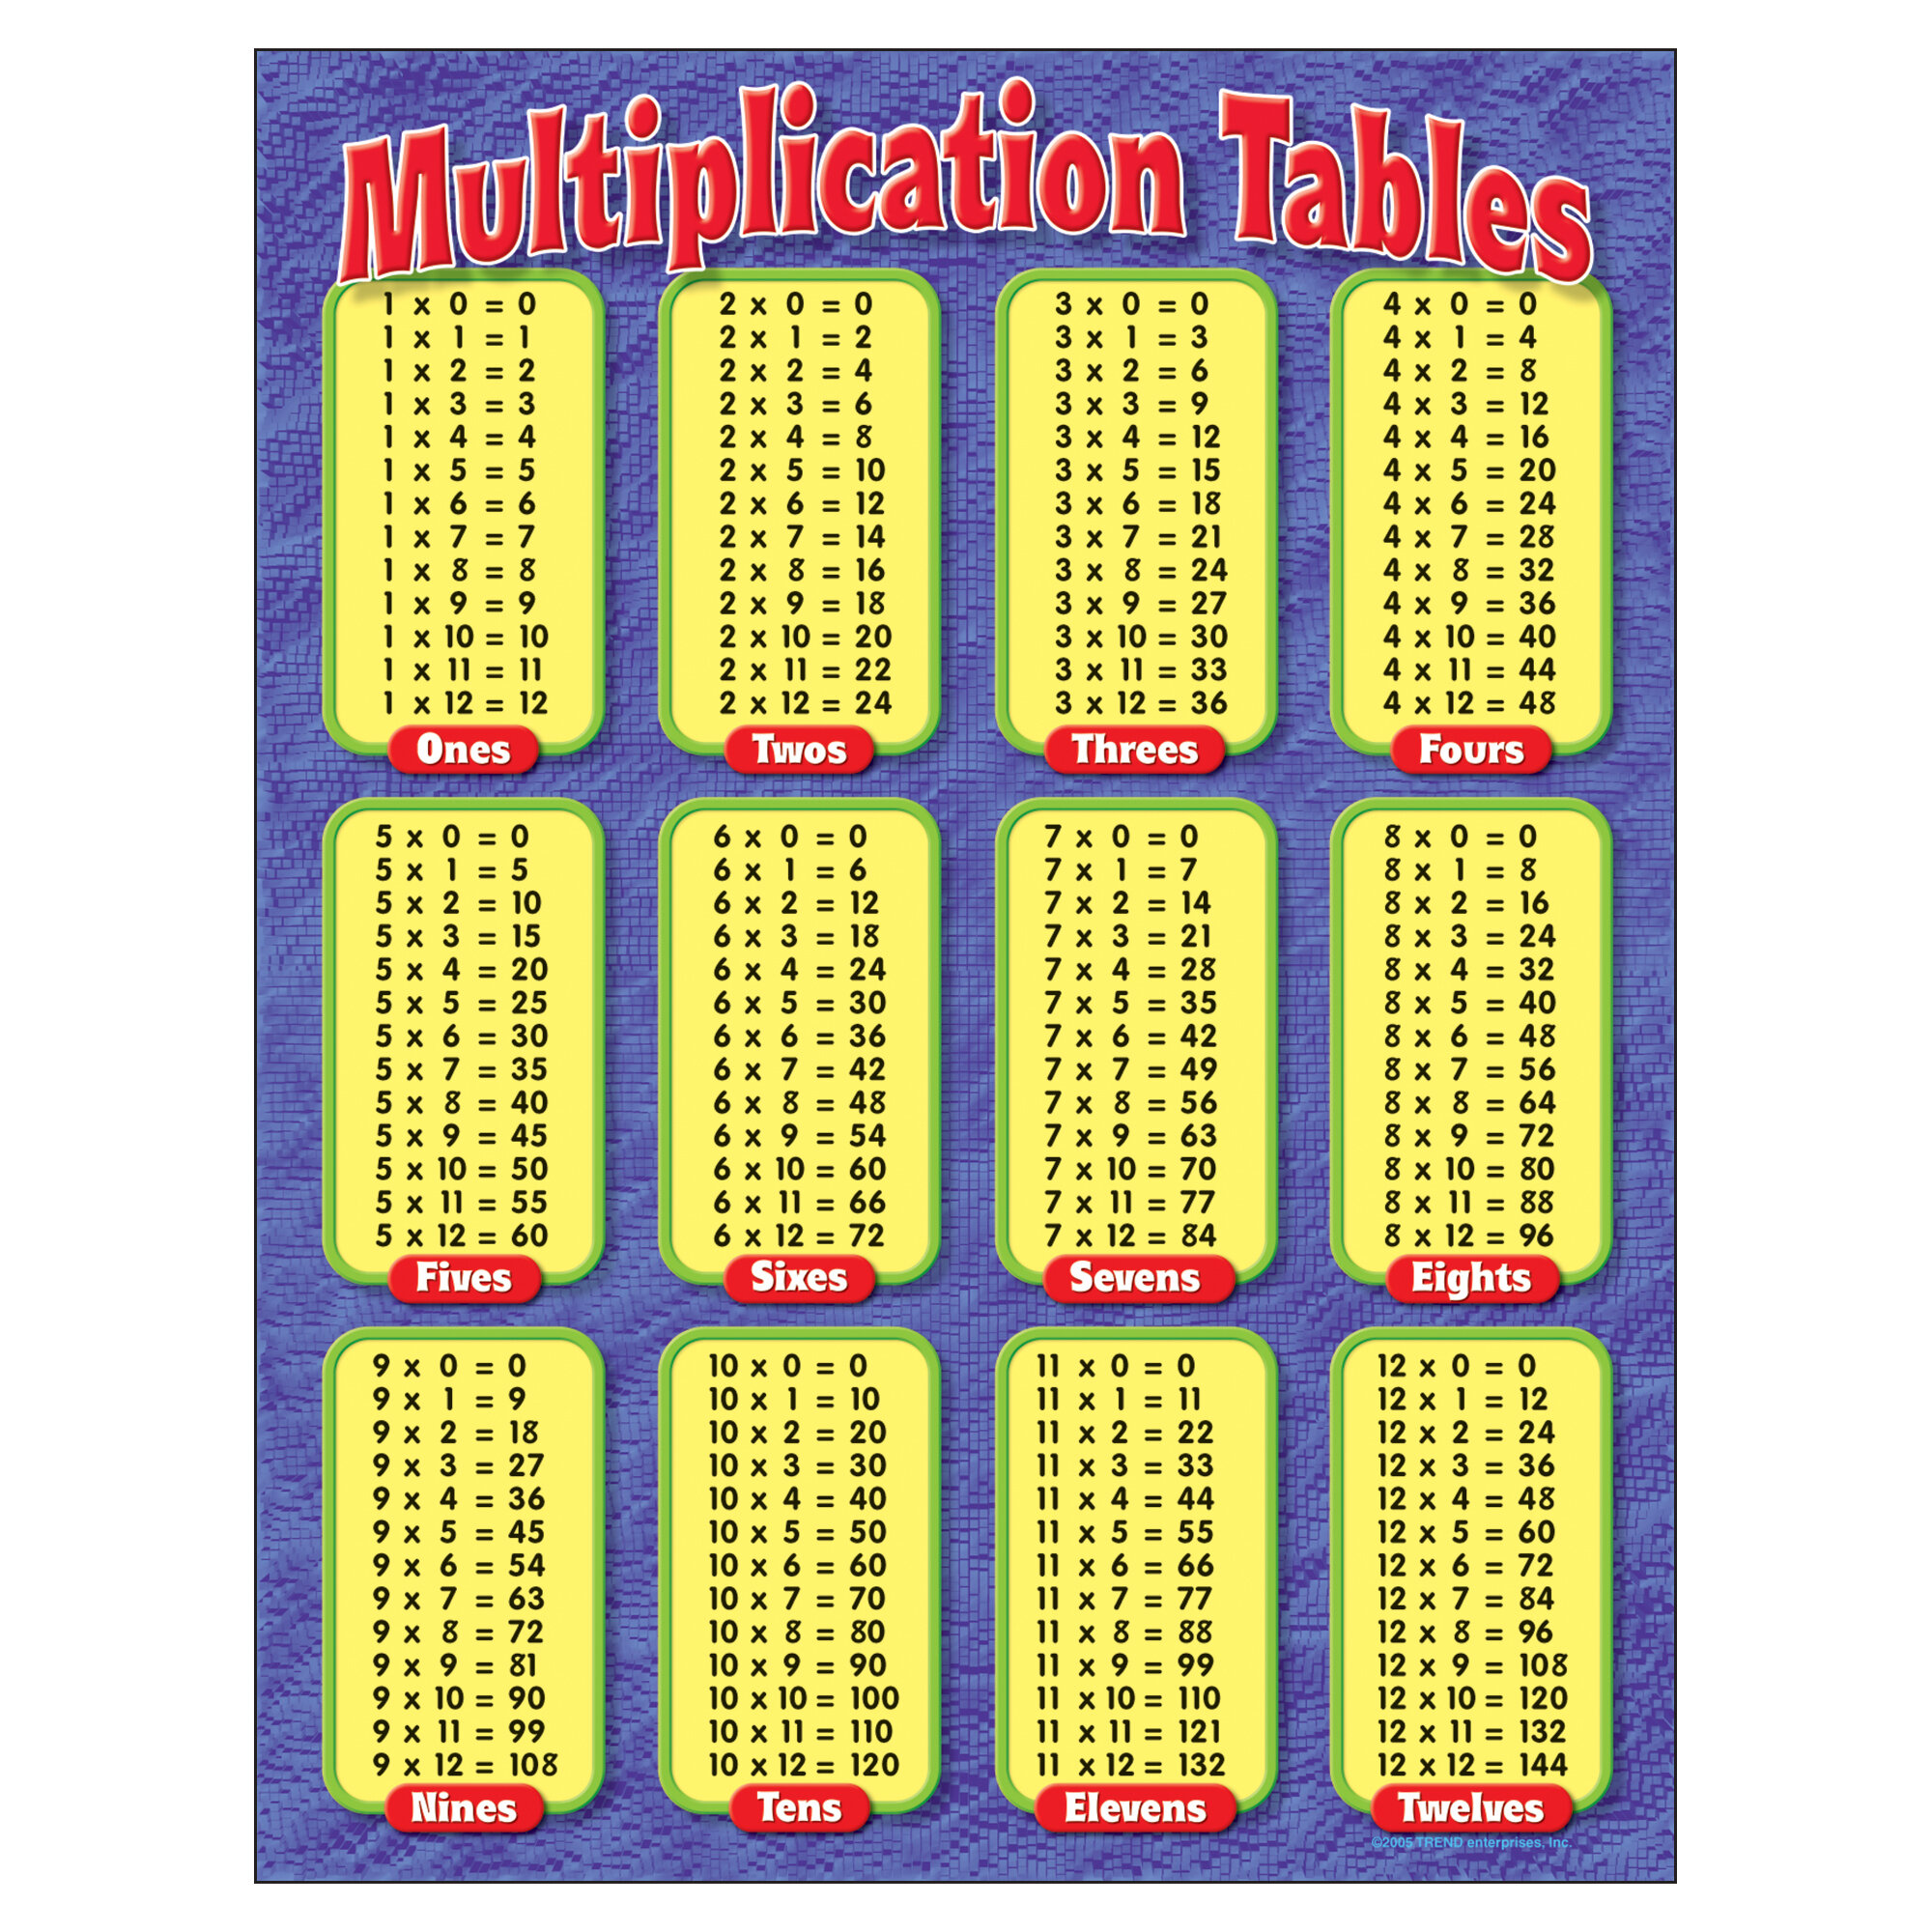 Multiplication table chart gallery free swot process multiplication chart 25x25 image collections free any chart examples multiplication tables grade chart multiplication chart 25x25html geenschuldenfo Gallery